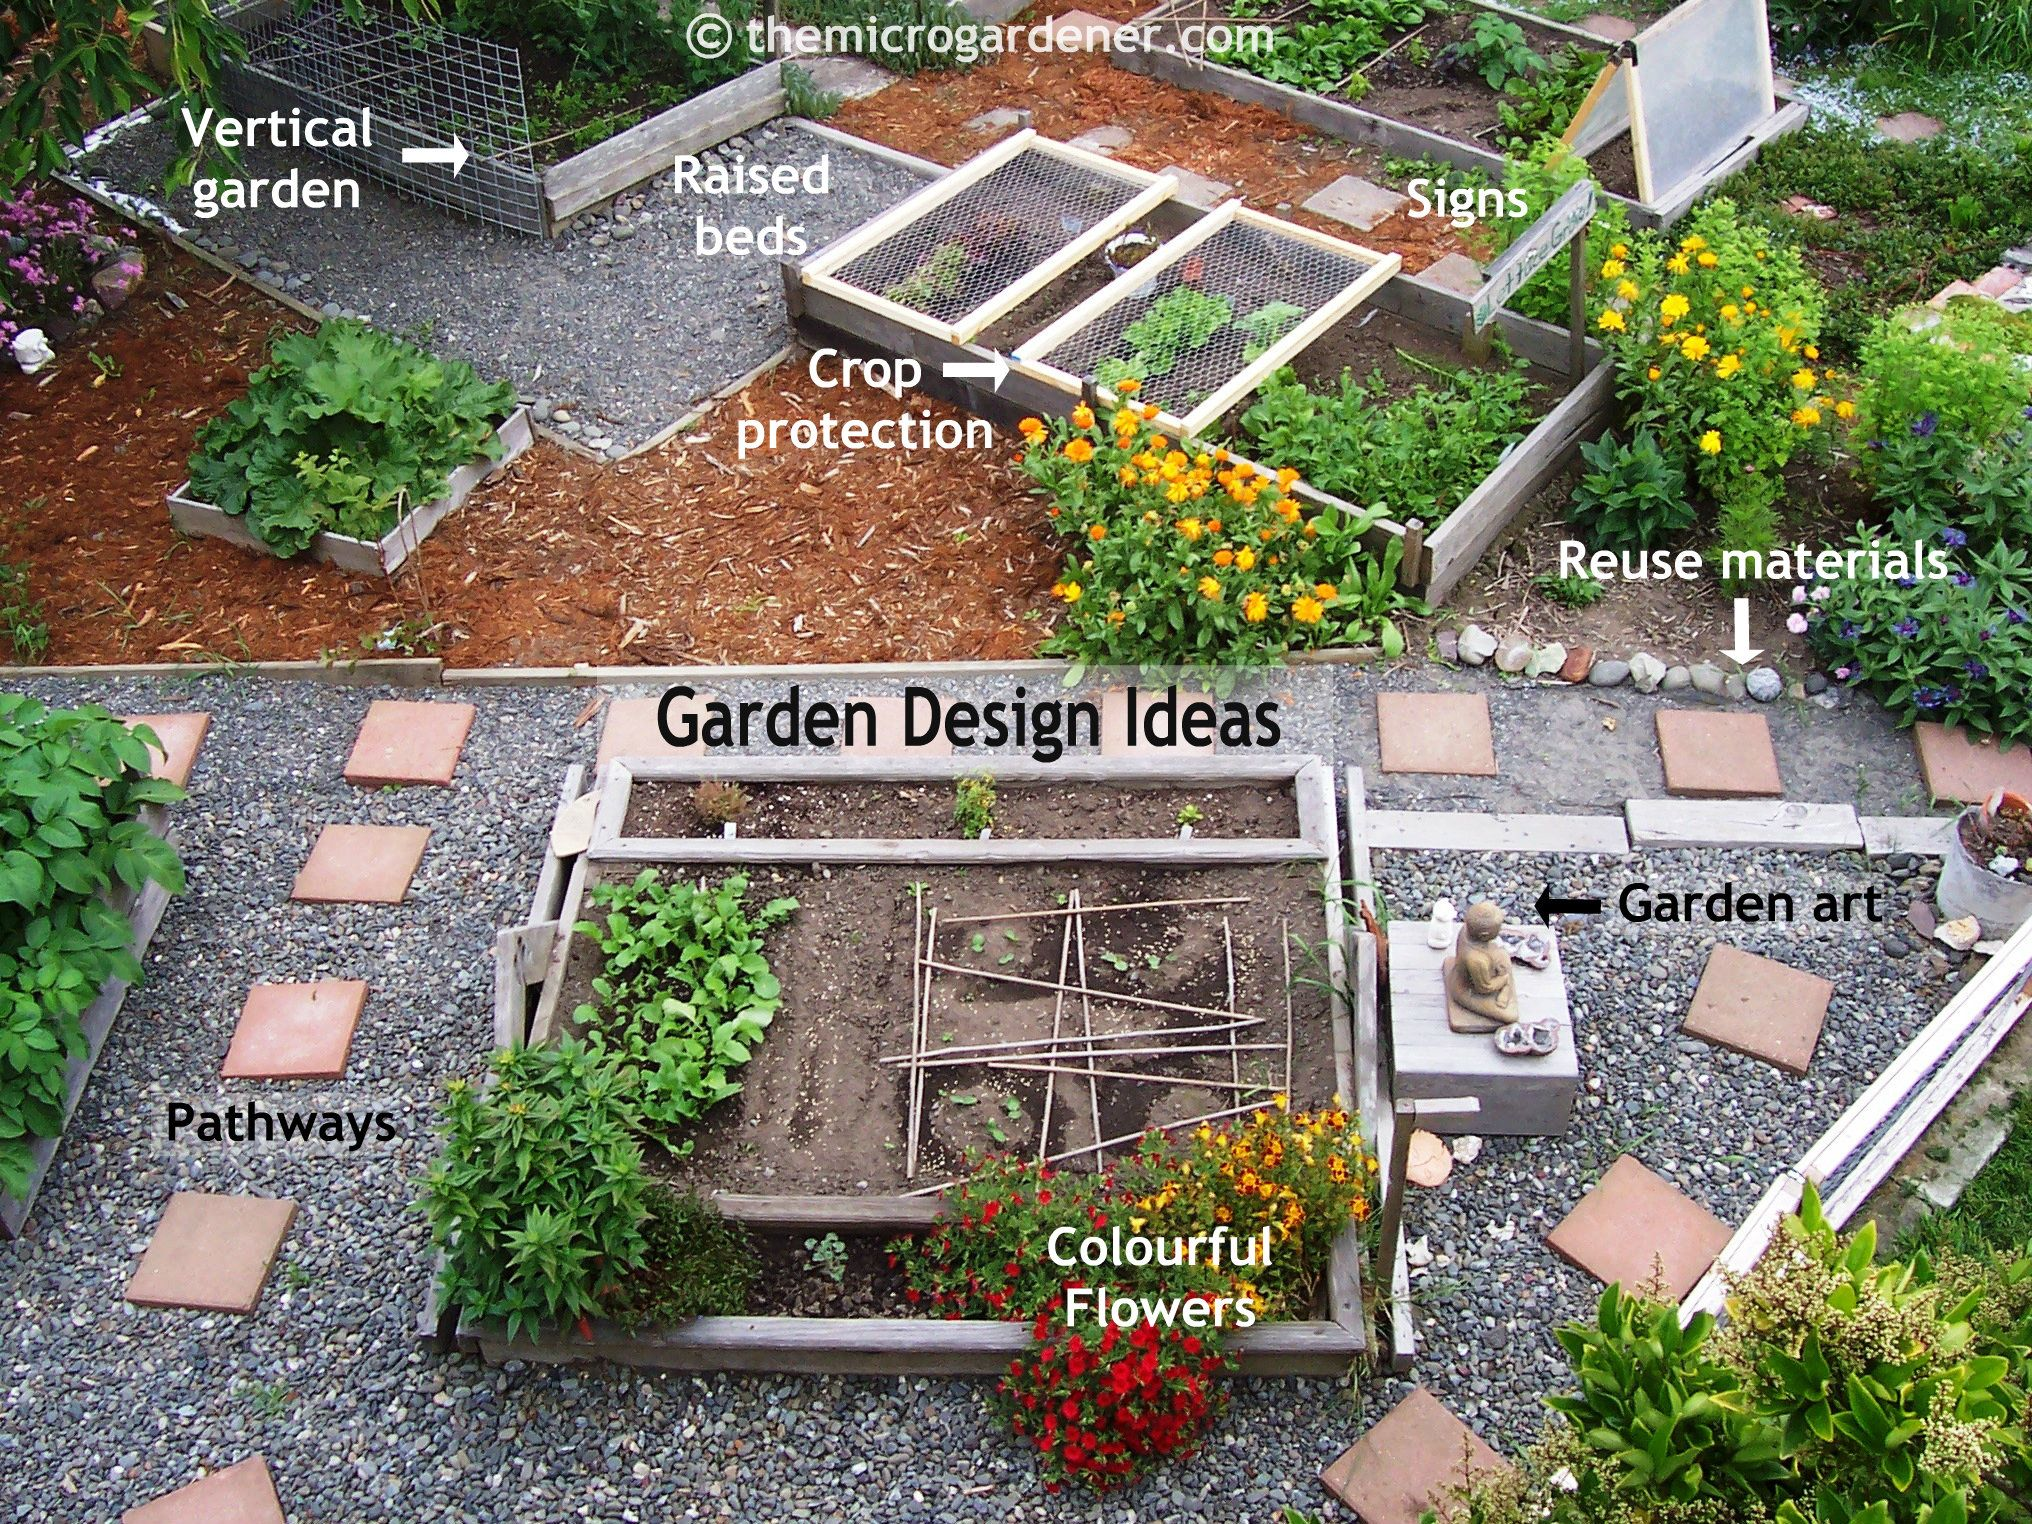 Small garden design ideas on pinterest vertical gardens small gard - How to create a garden in a small space image ...